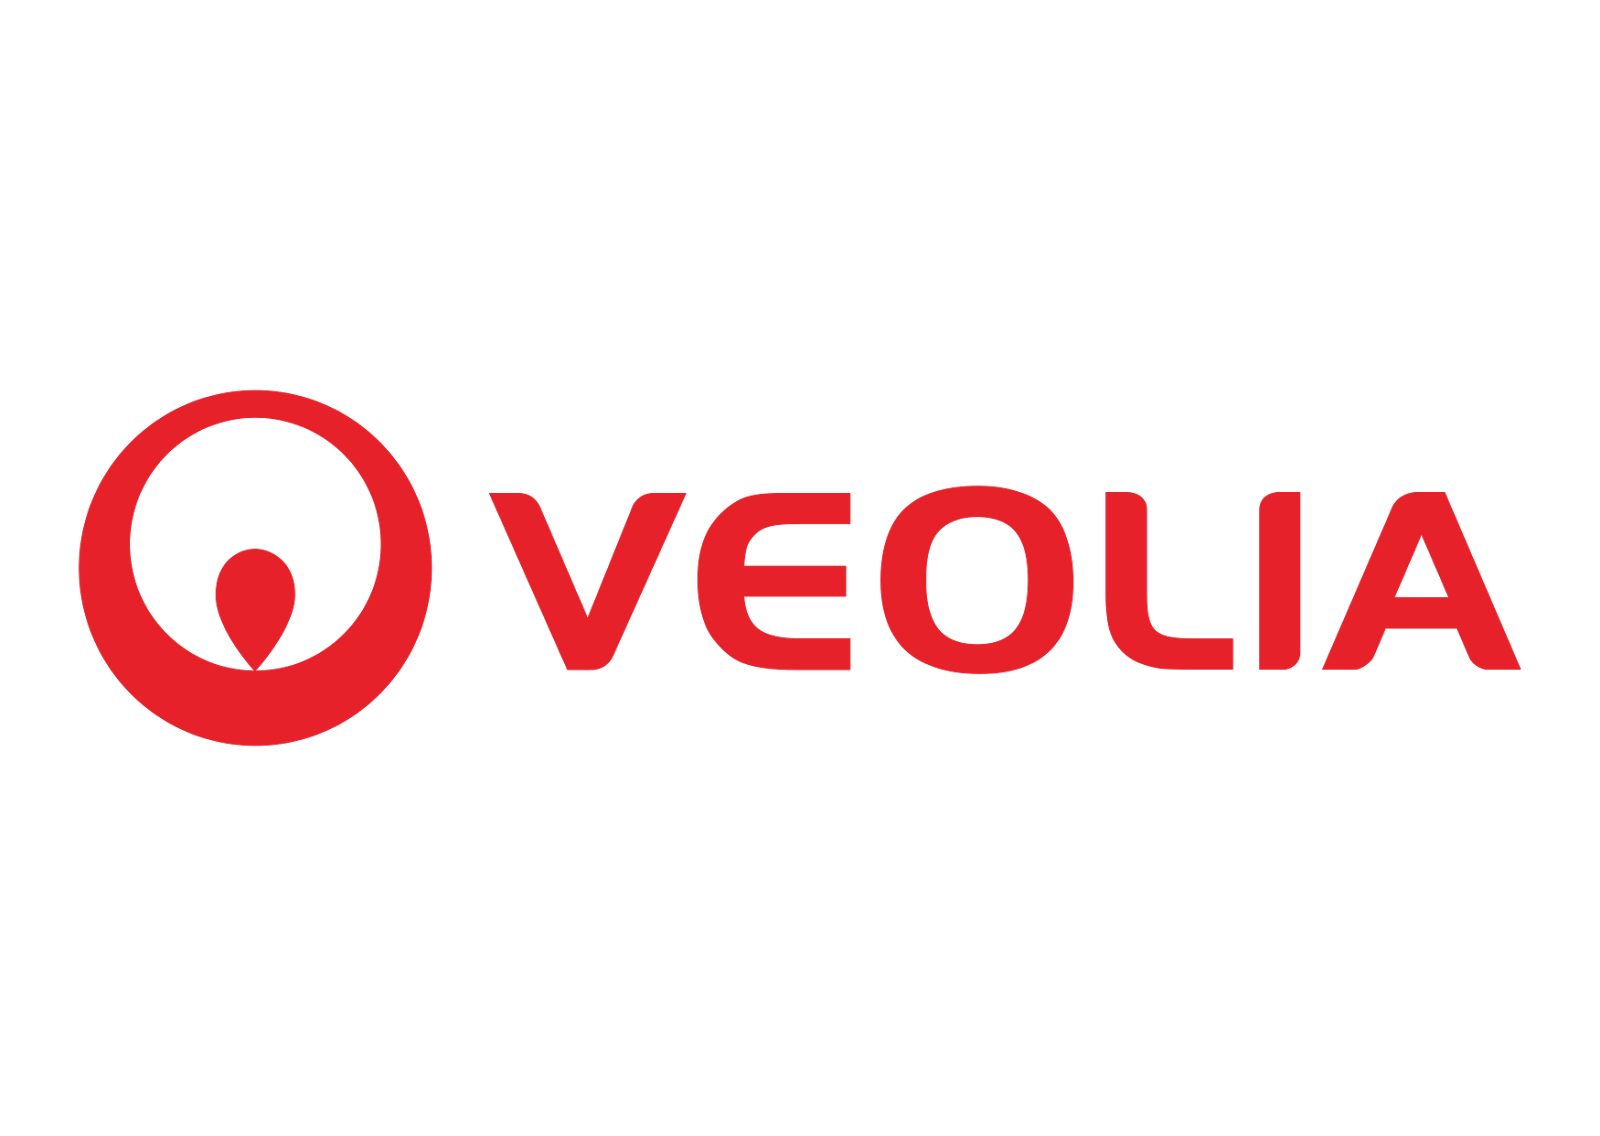 Veolia loses ISDS case against Egypt – after six years and millions in costs